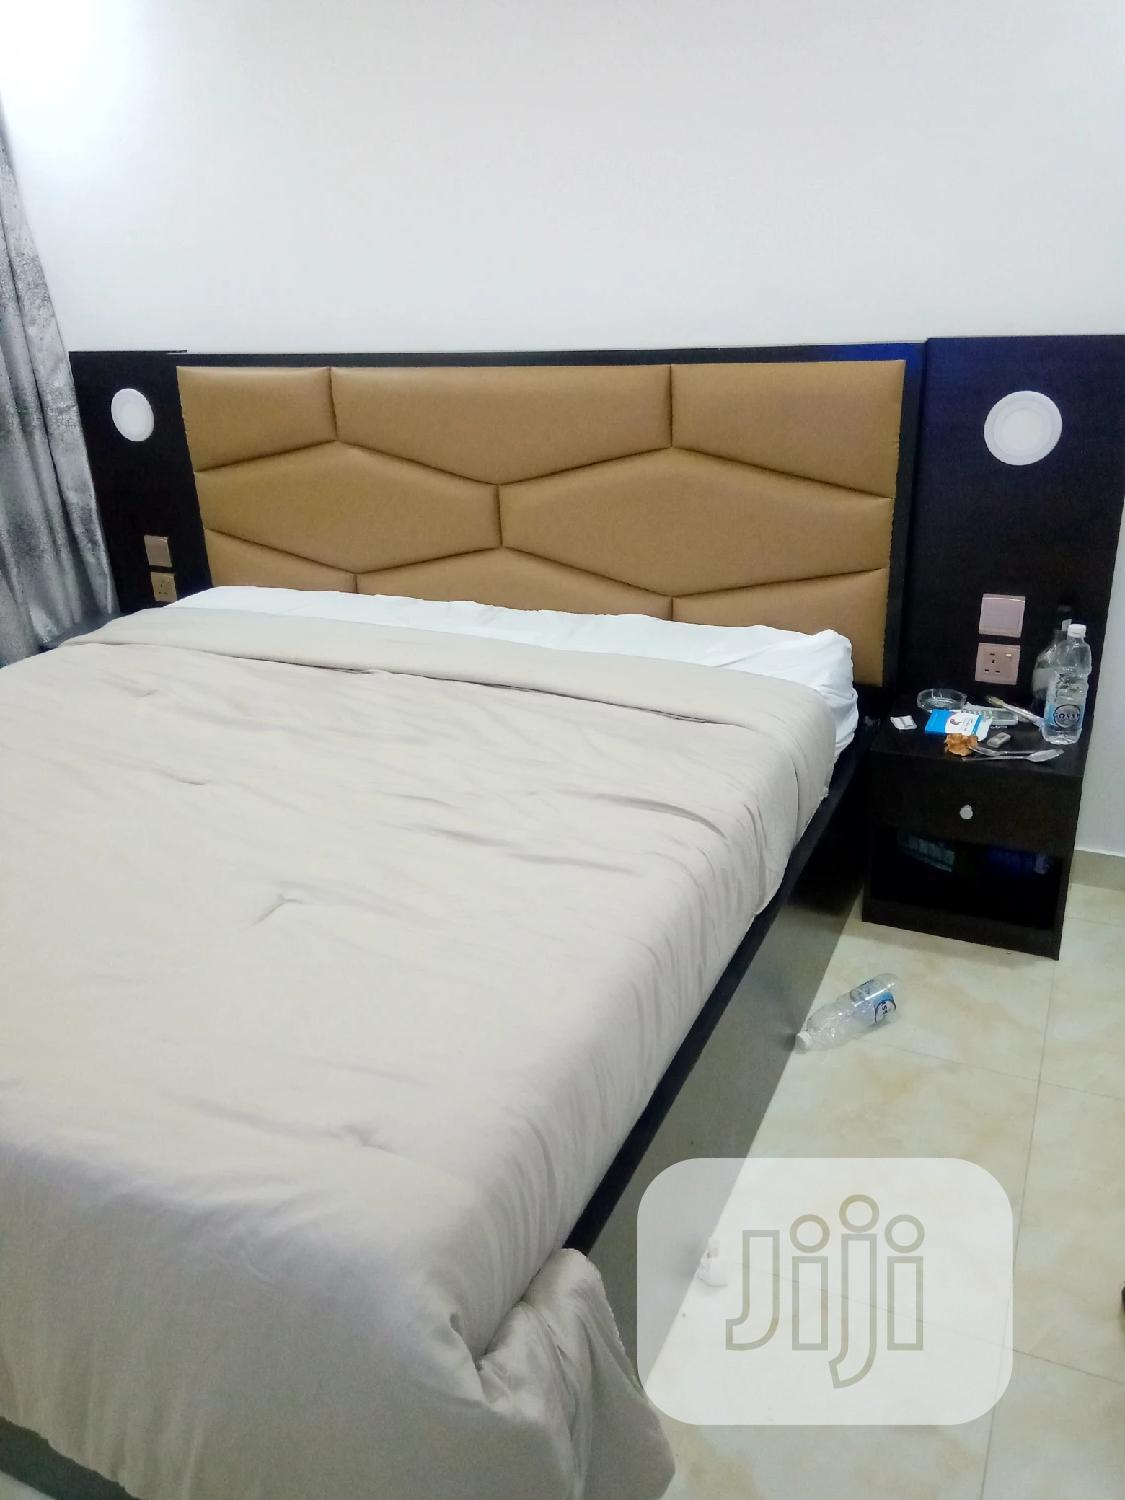 Archive: Upholstery Board Bedframe With Light And Changer Soket